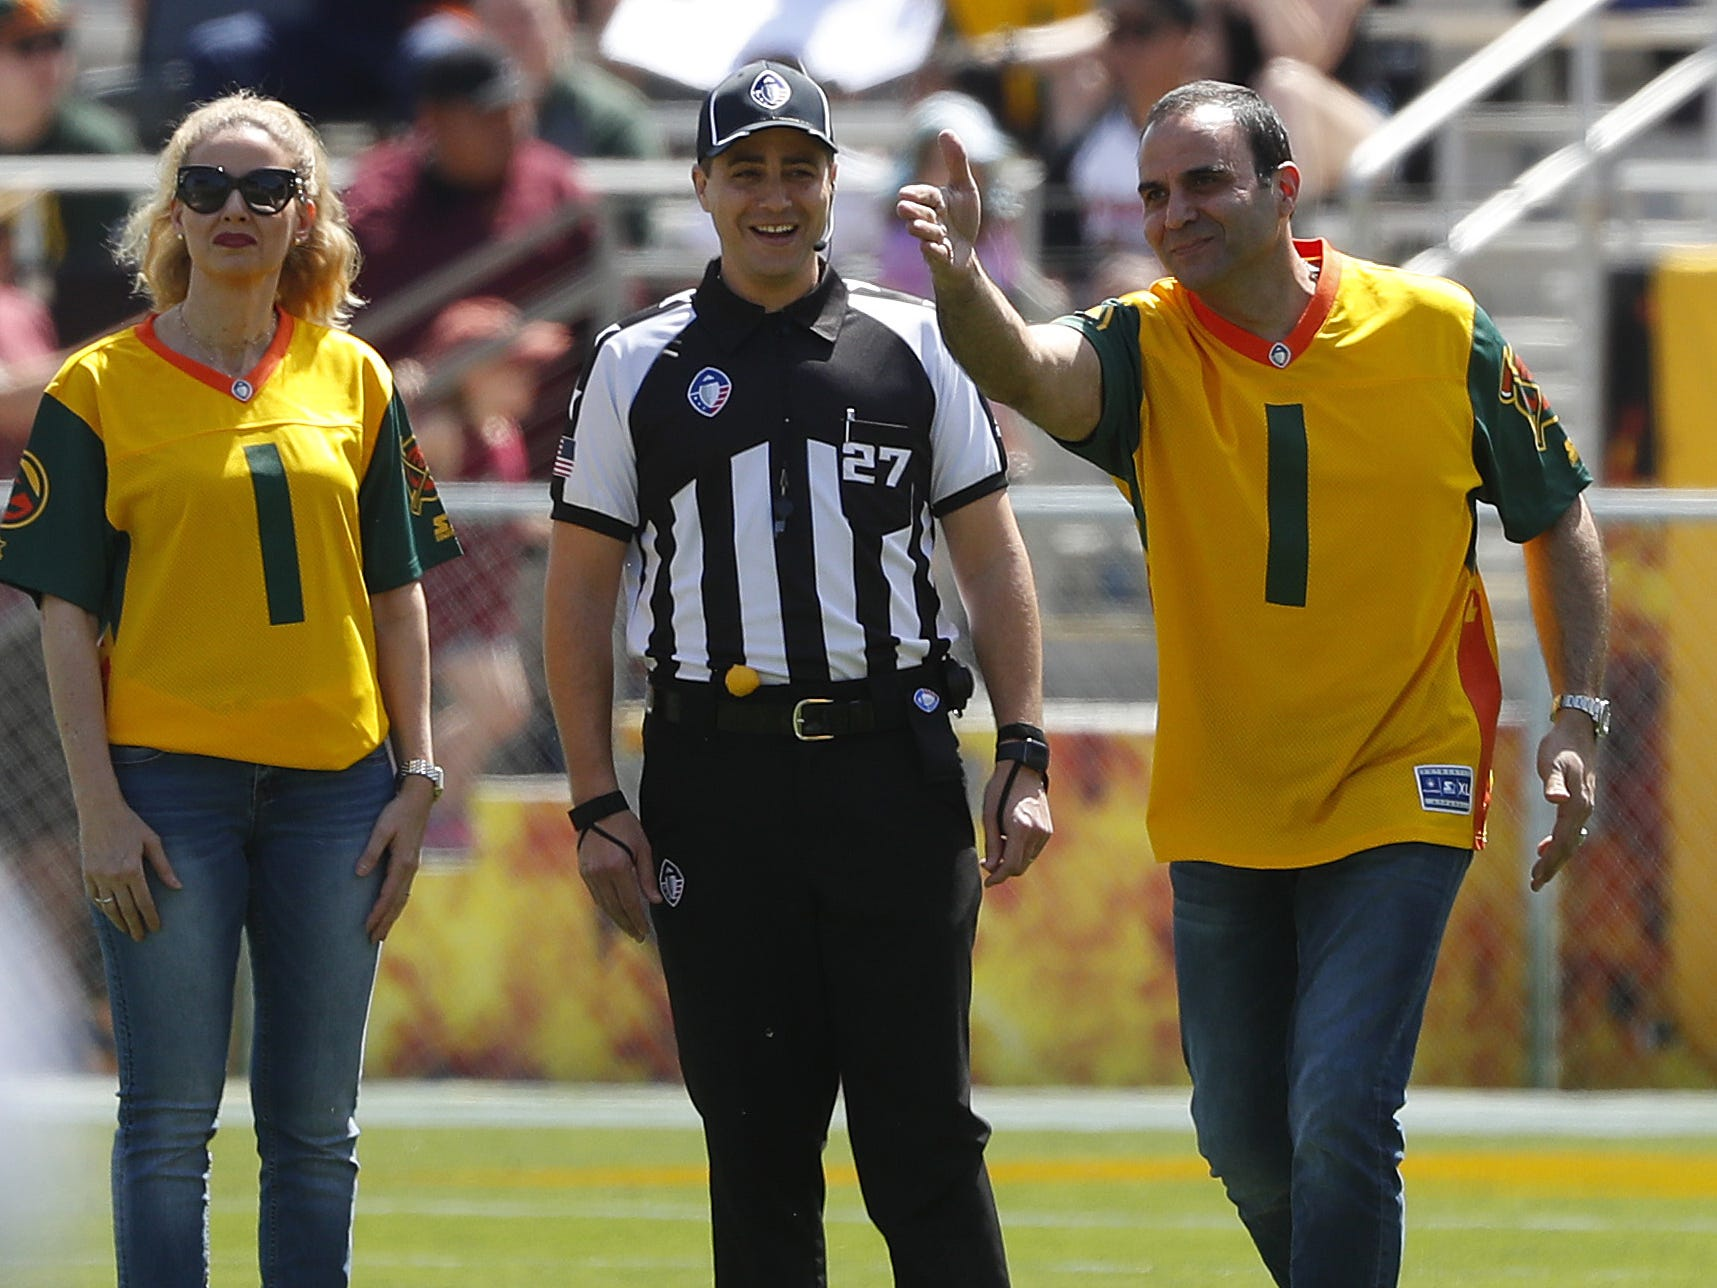 Sheriff Paul Penzone signals a first down before the first half at Sun Devil Stadium in Tempe, Ariz. on March 24, 2019.